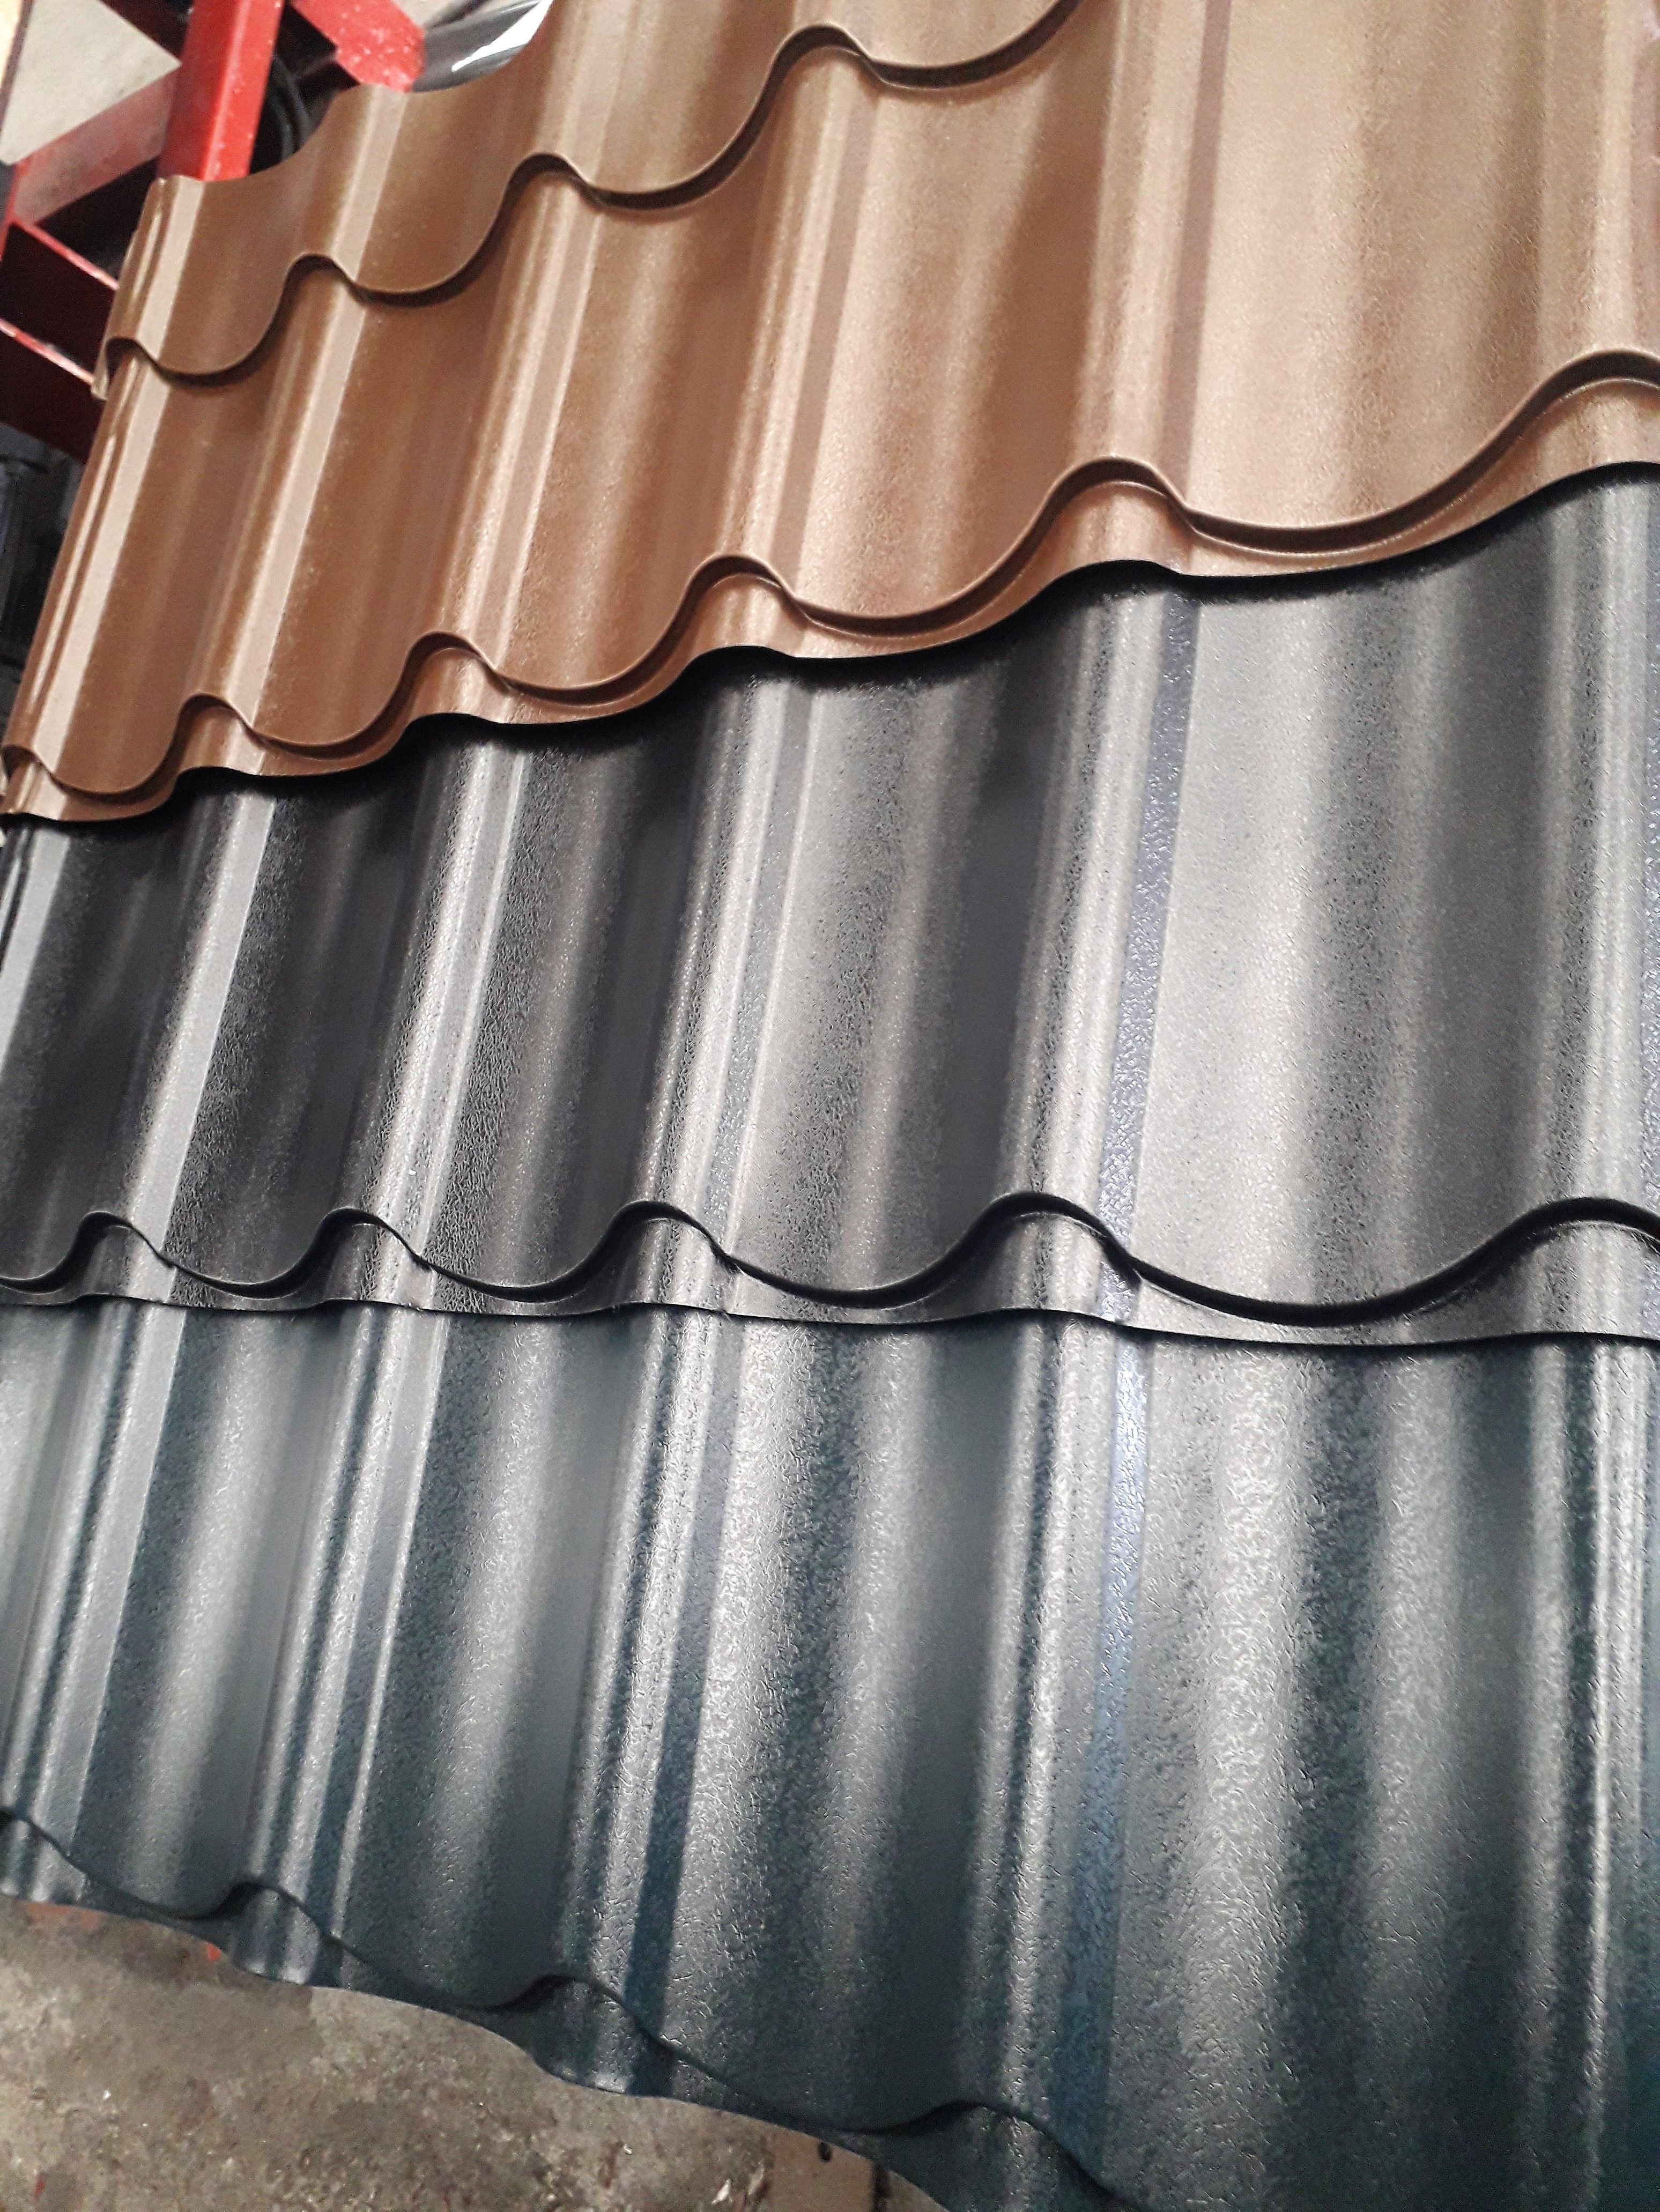 Tile Effect Cladding Gusclad In 2020 Cladding Roof Cladding Tile Cladding